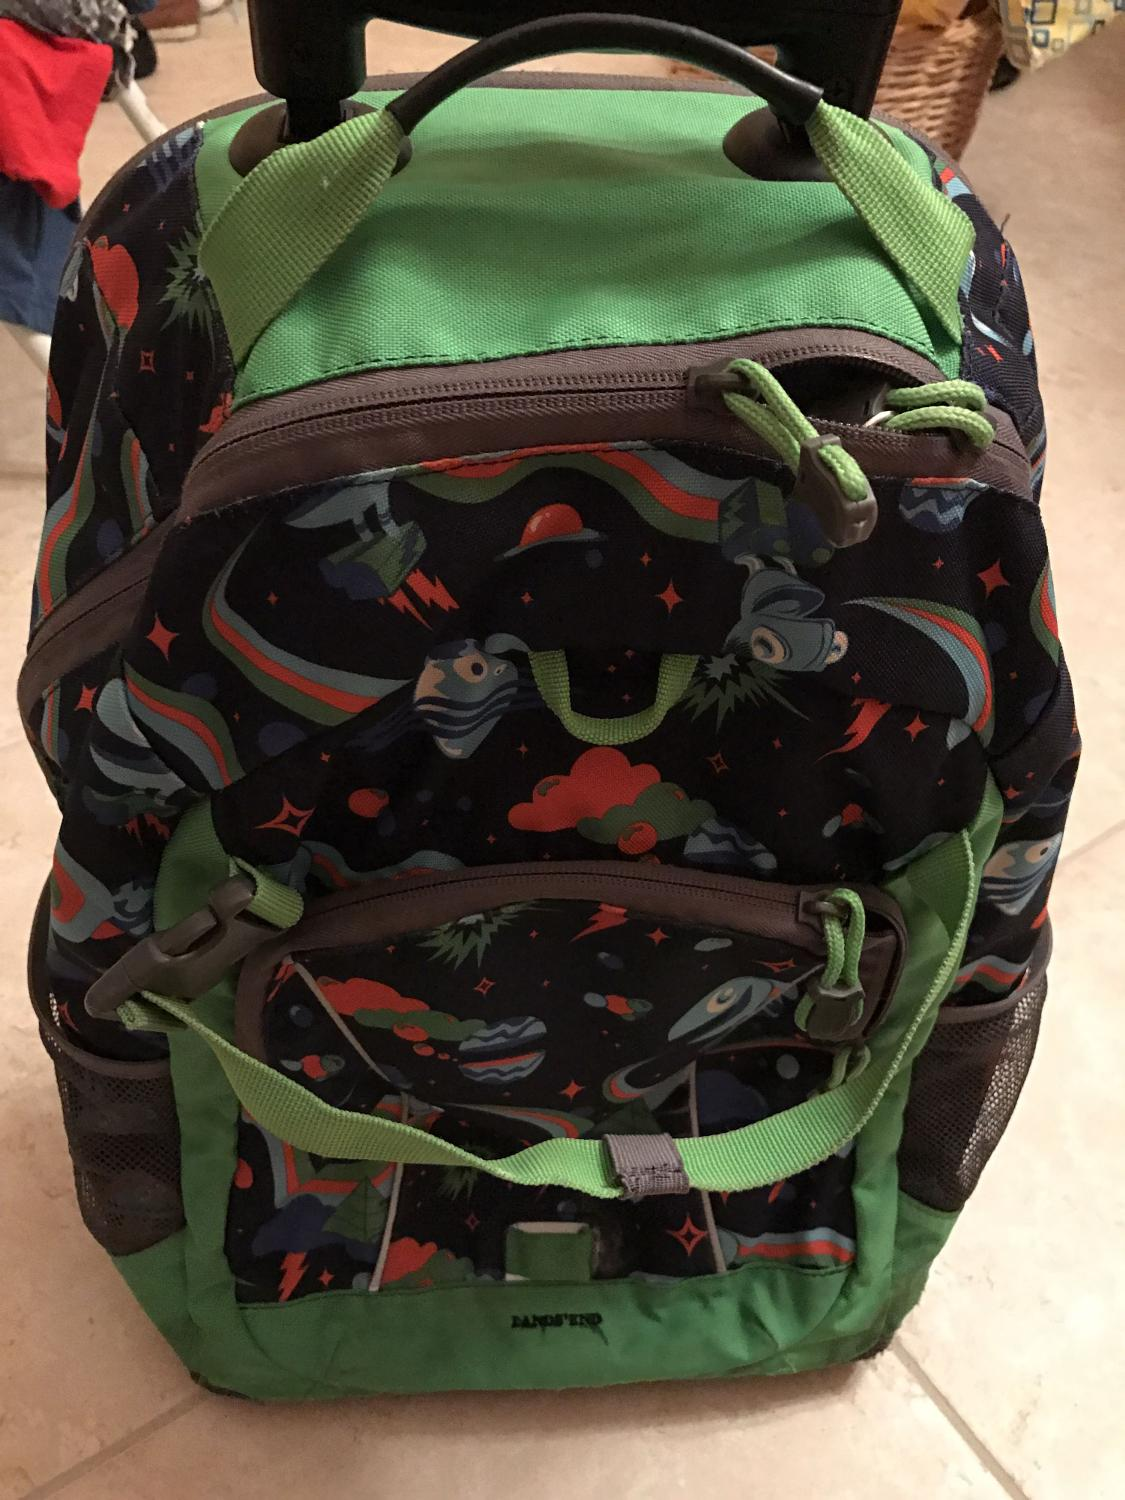 Buy Rolling Make Up Artist Bag With Seat: Find More Rolling Backpack 3$ Lands End For Sale At Up To